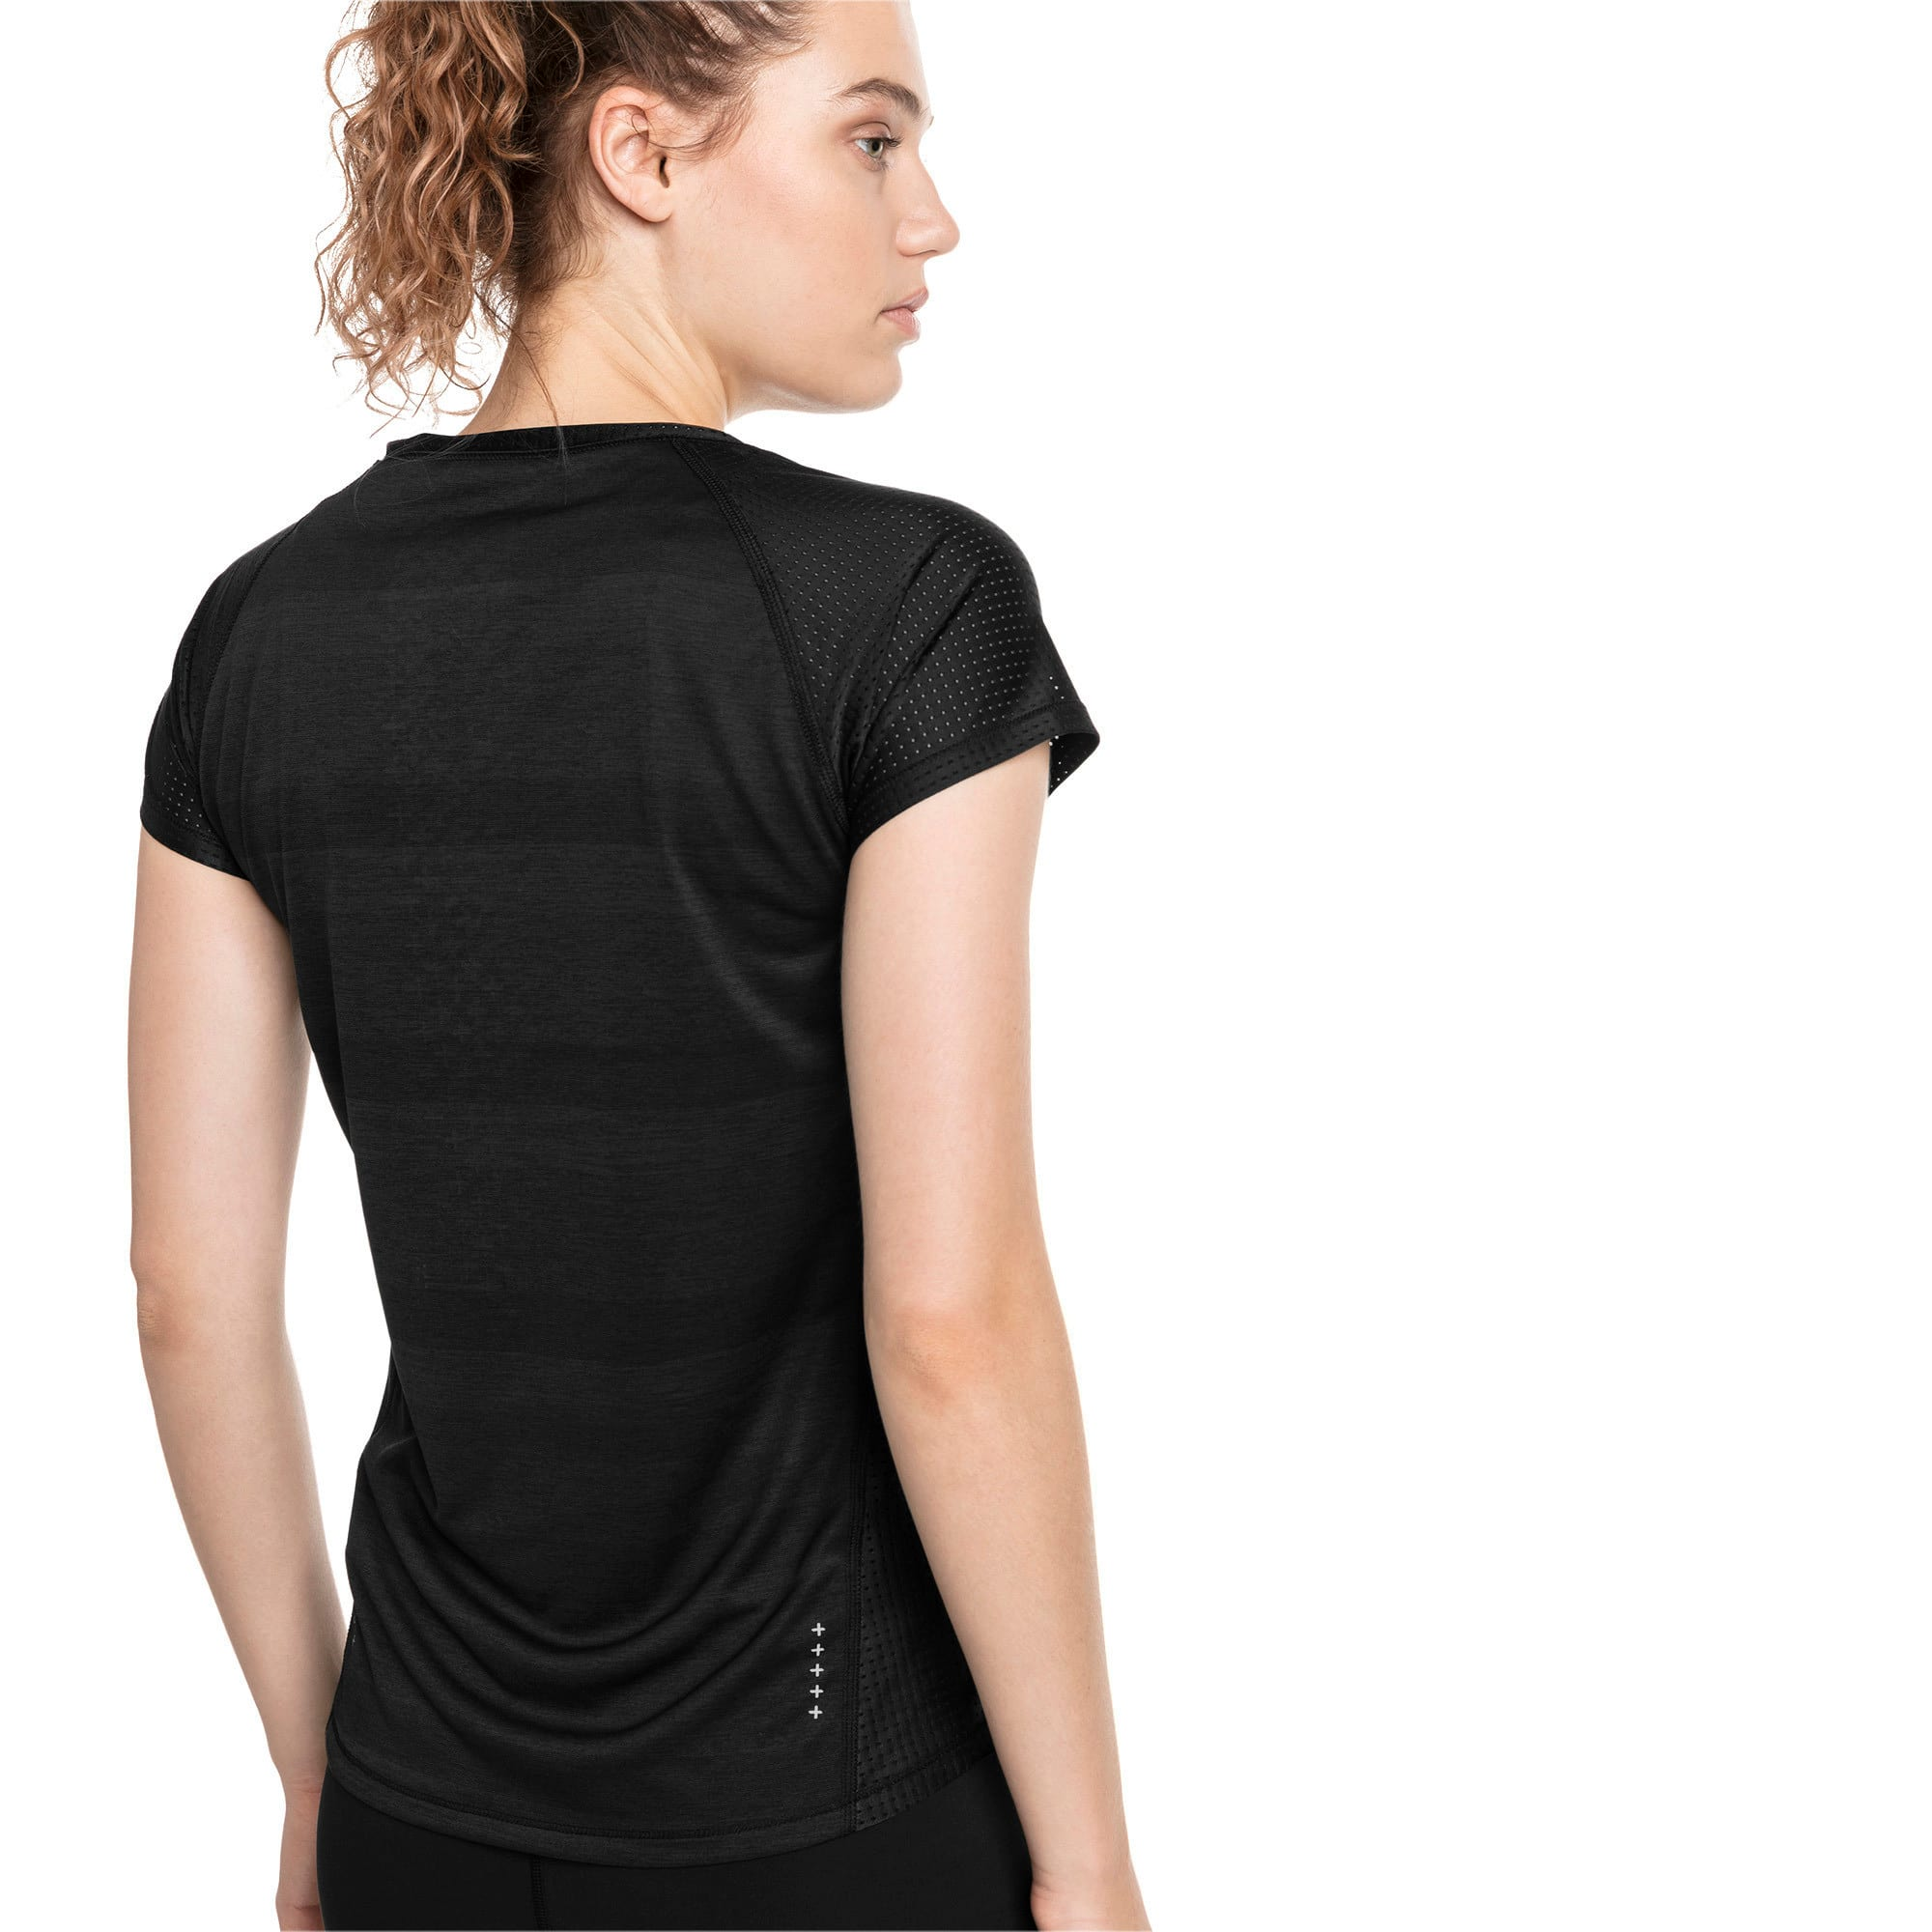 Thumbnail 2 of Thermo- R+ Women's Performance Tee, Puma Black Heather, medium